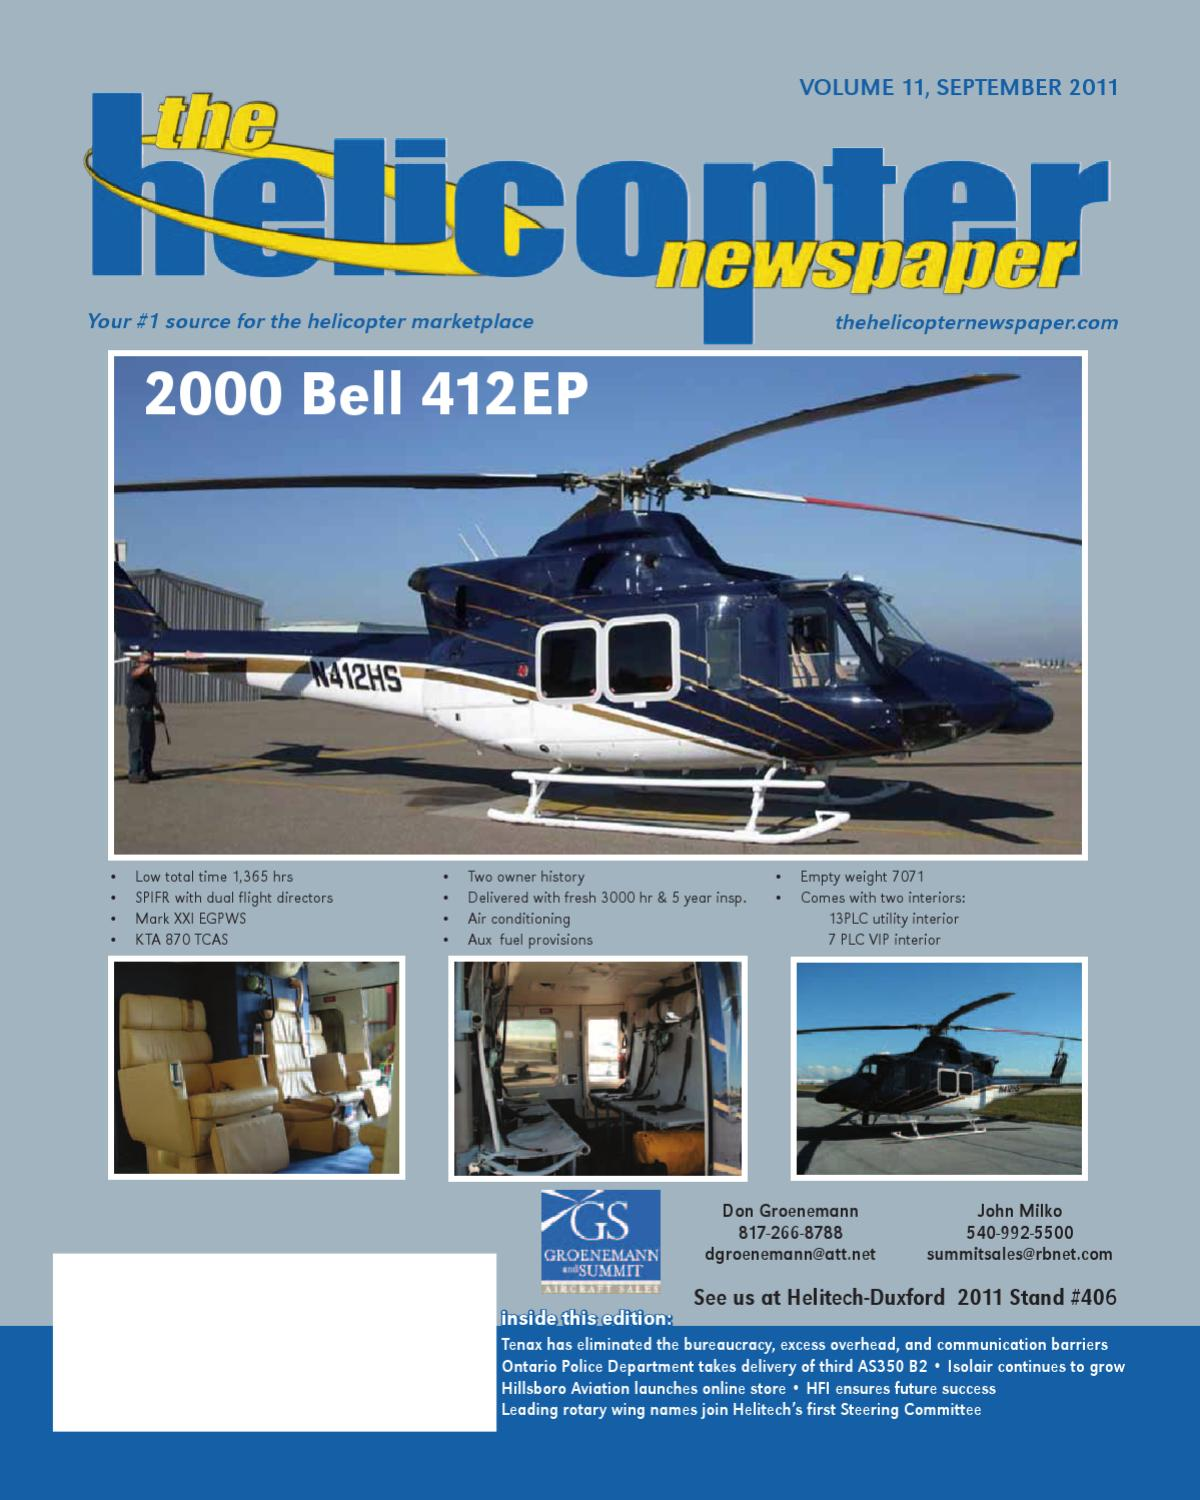 The Helicopter Newspaper - Sept 2011 by The Helicopter Newspaper - issuu